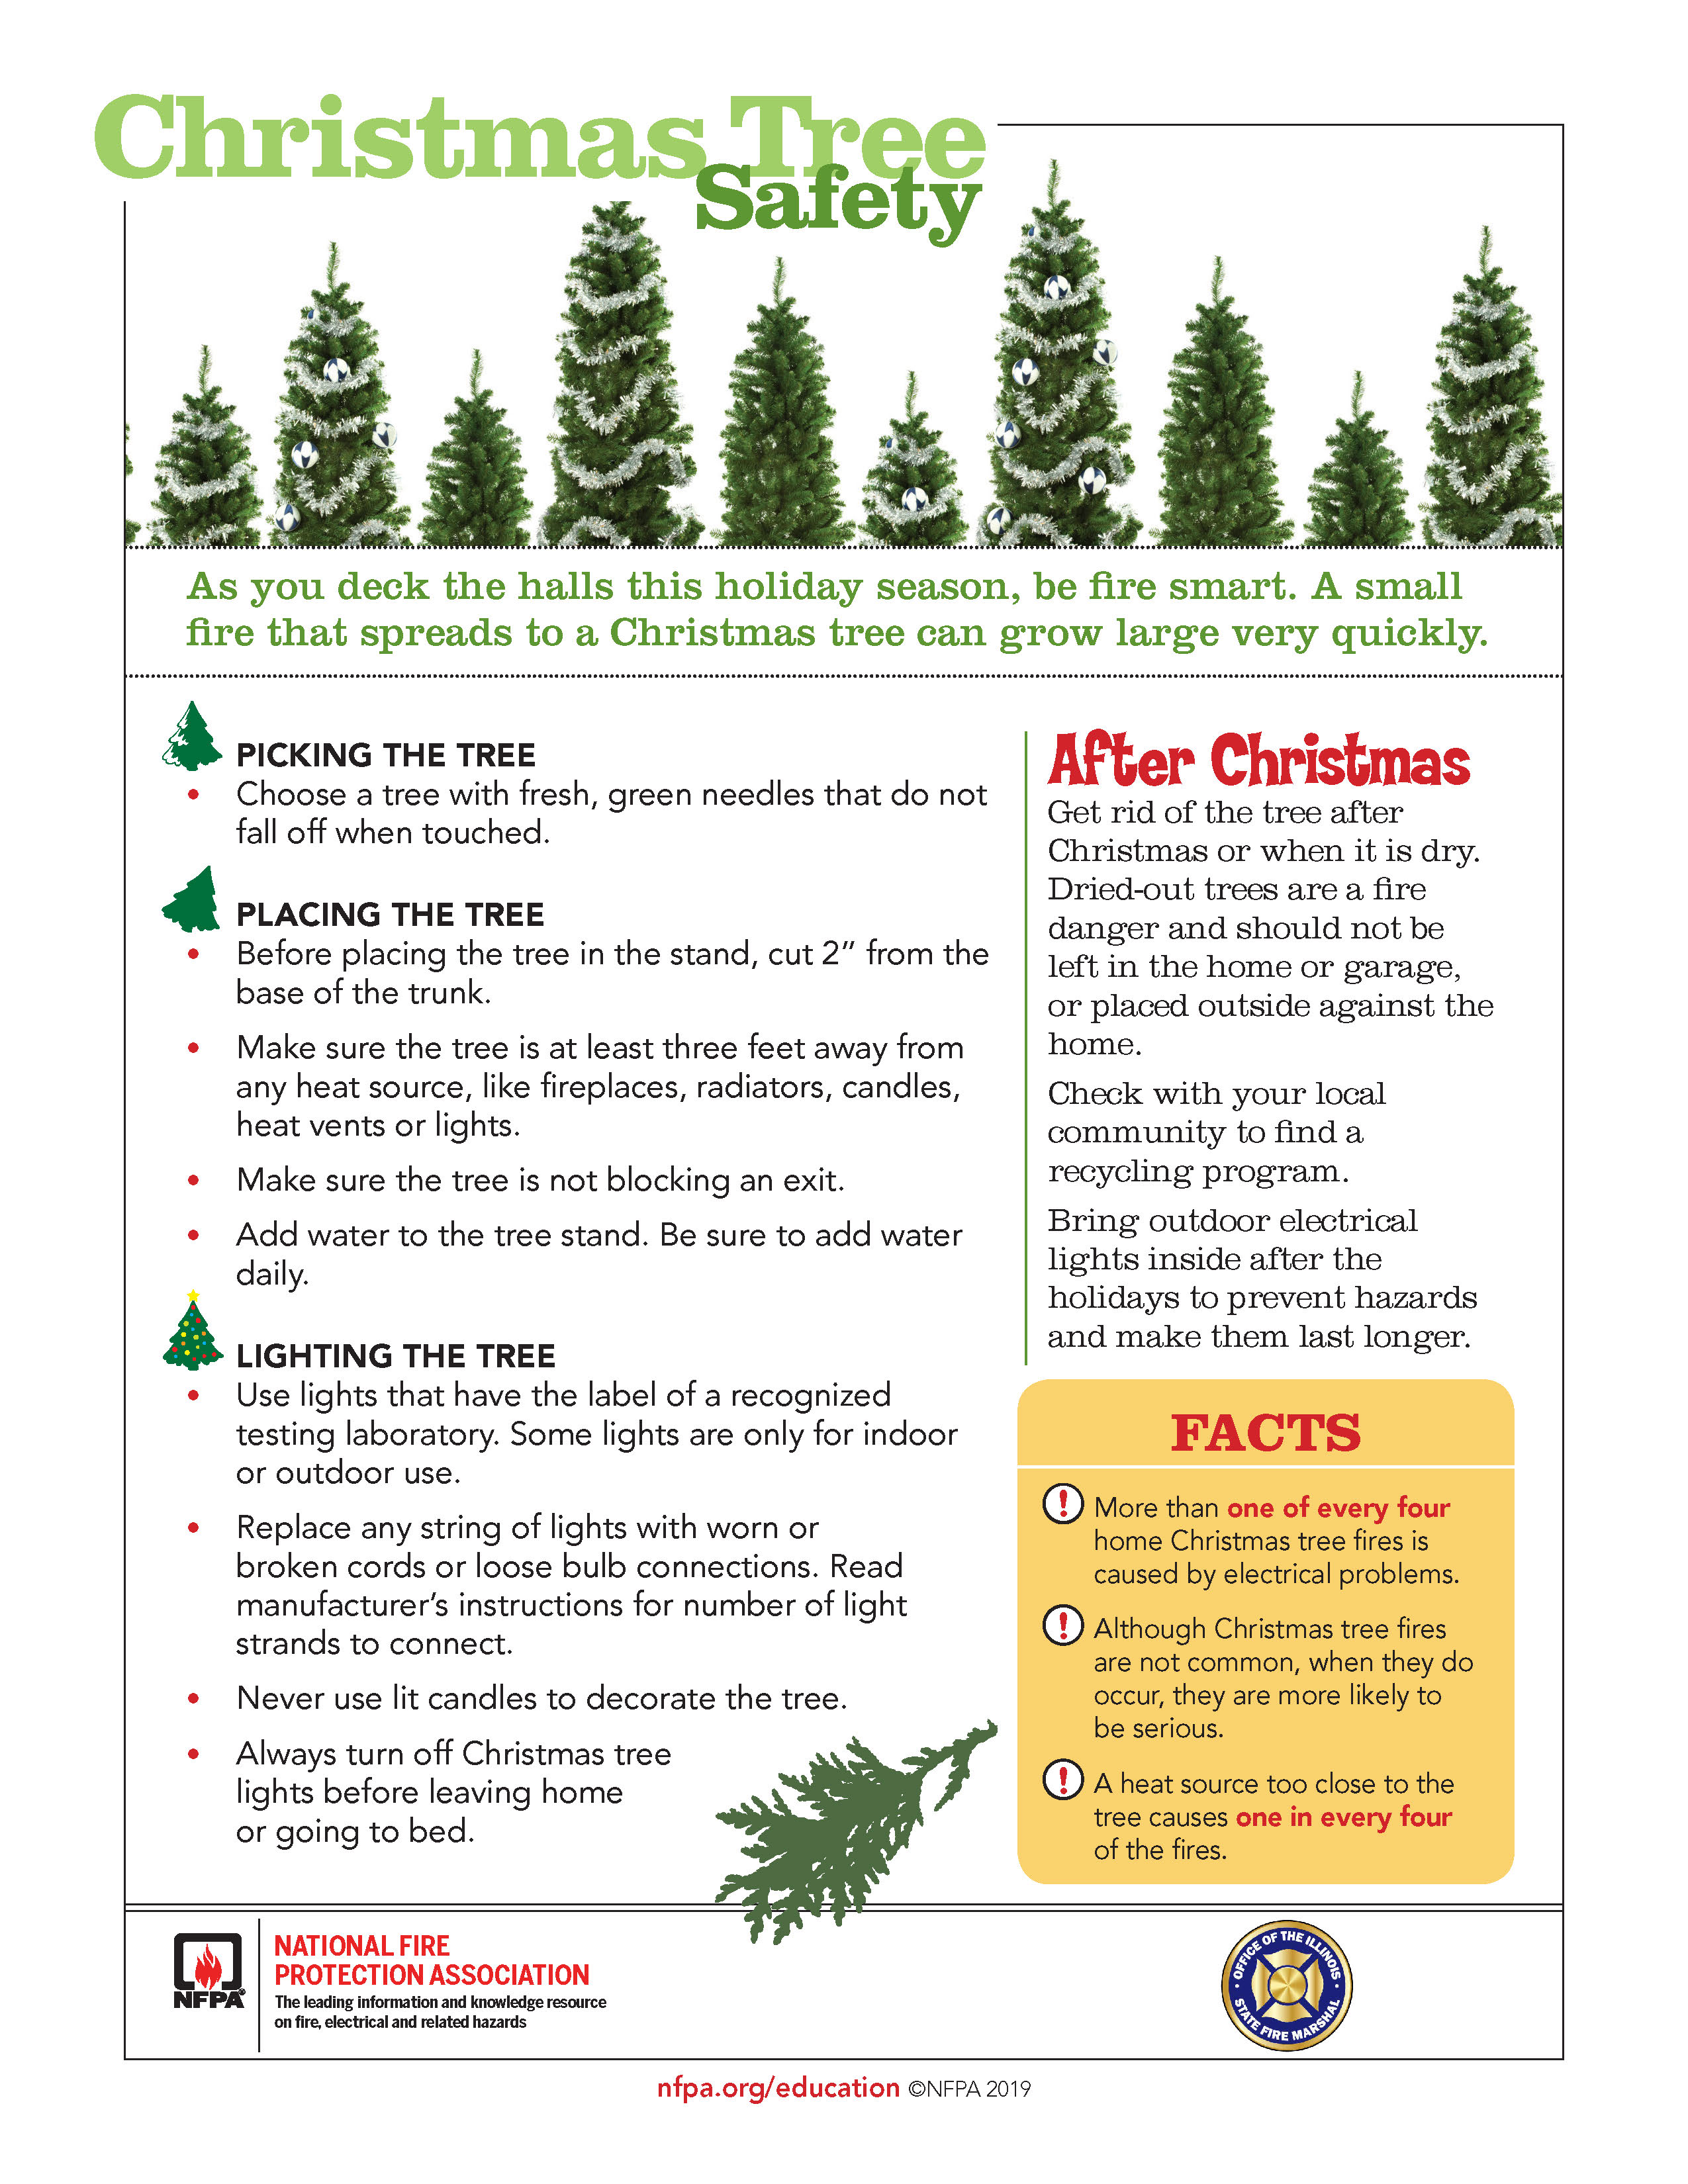 Christmas Tree Collection Springfield Illinois 2020 Christmas Tree Safety